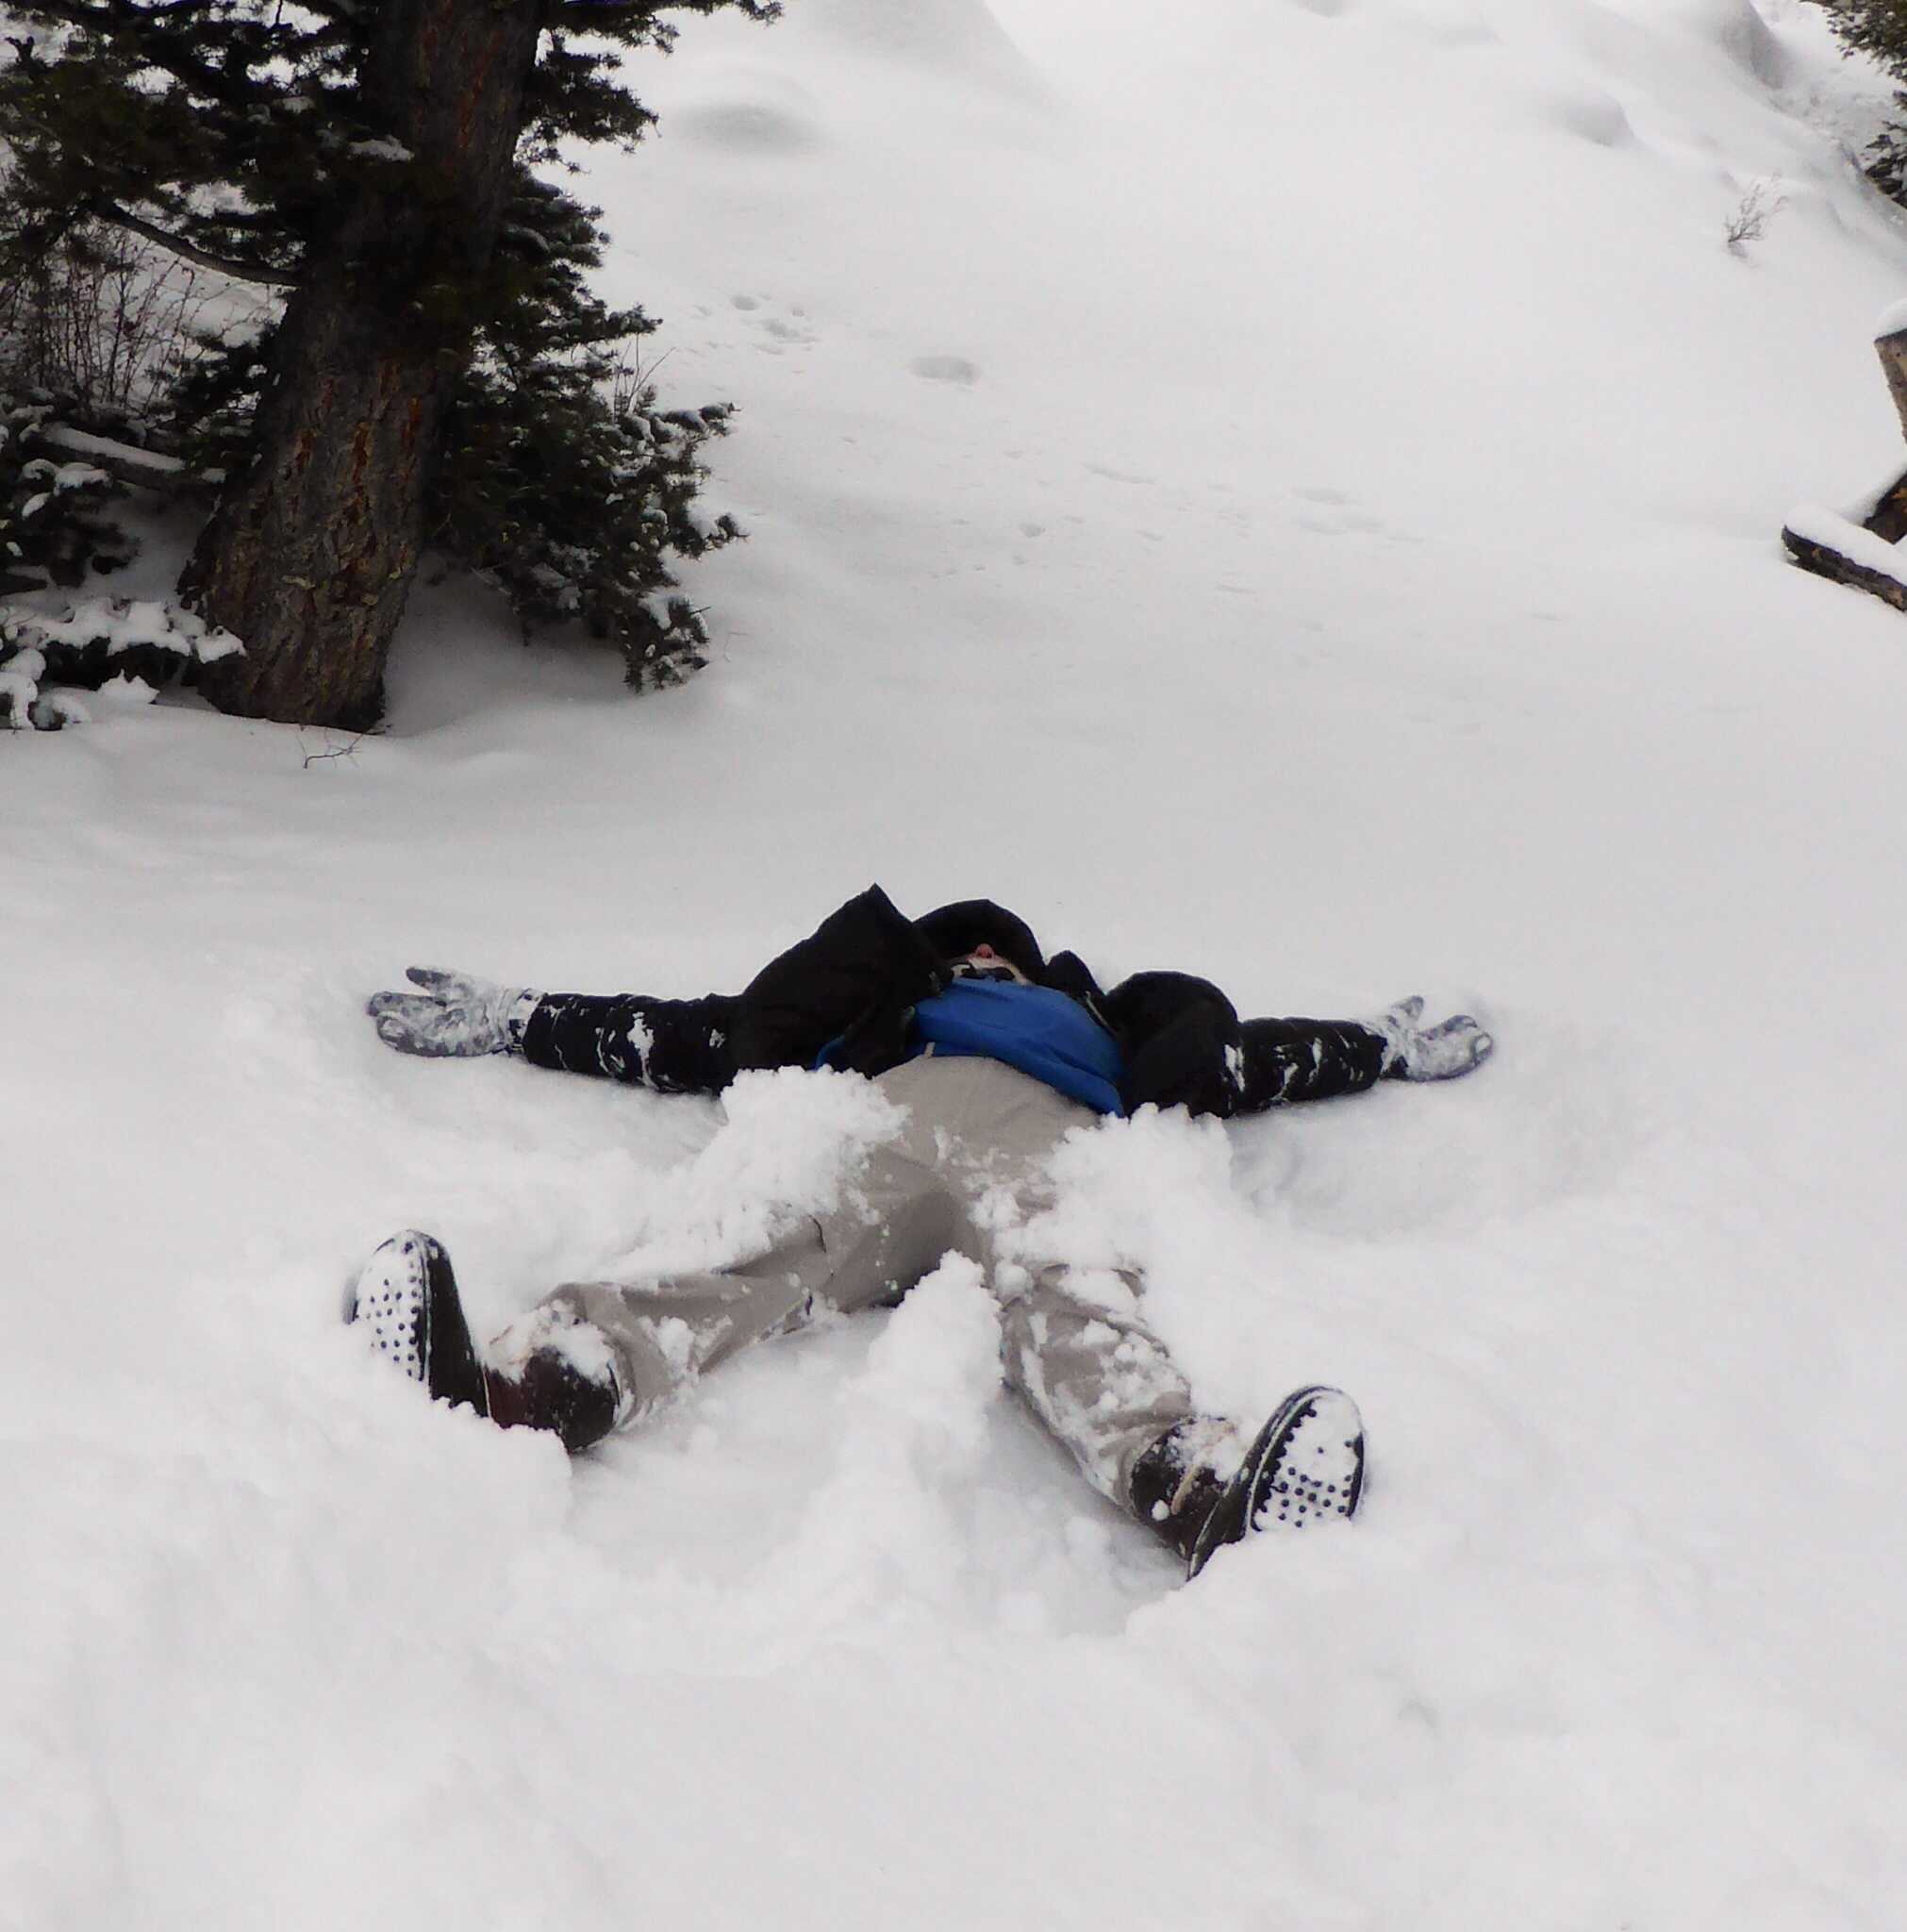 I try to make at least one snow angel per trip. Sometimes the entire group will layout snow angels in a line, 15 or 16 long. This day it was just me.